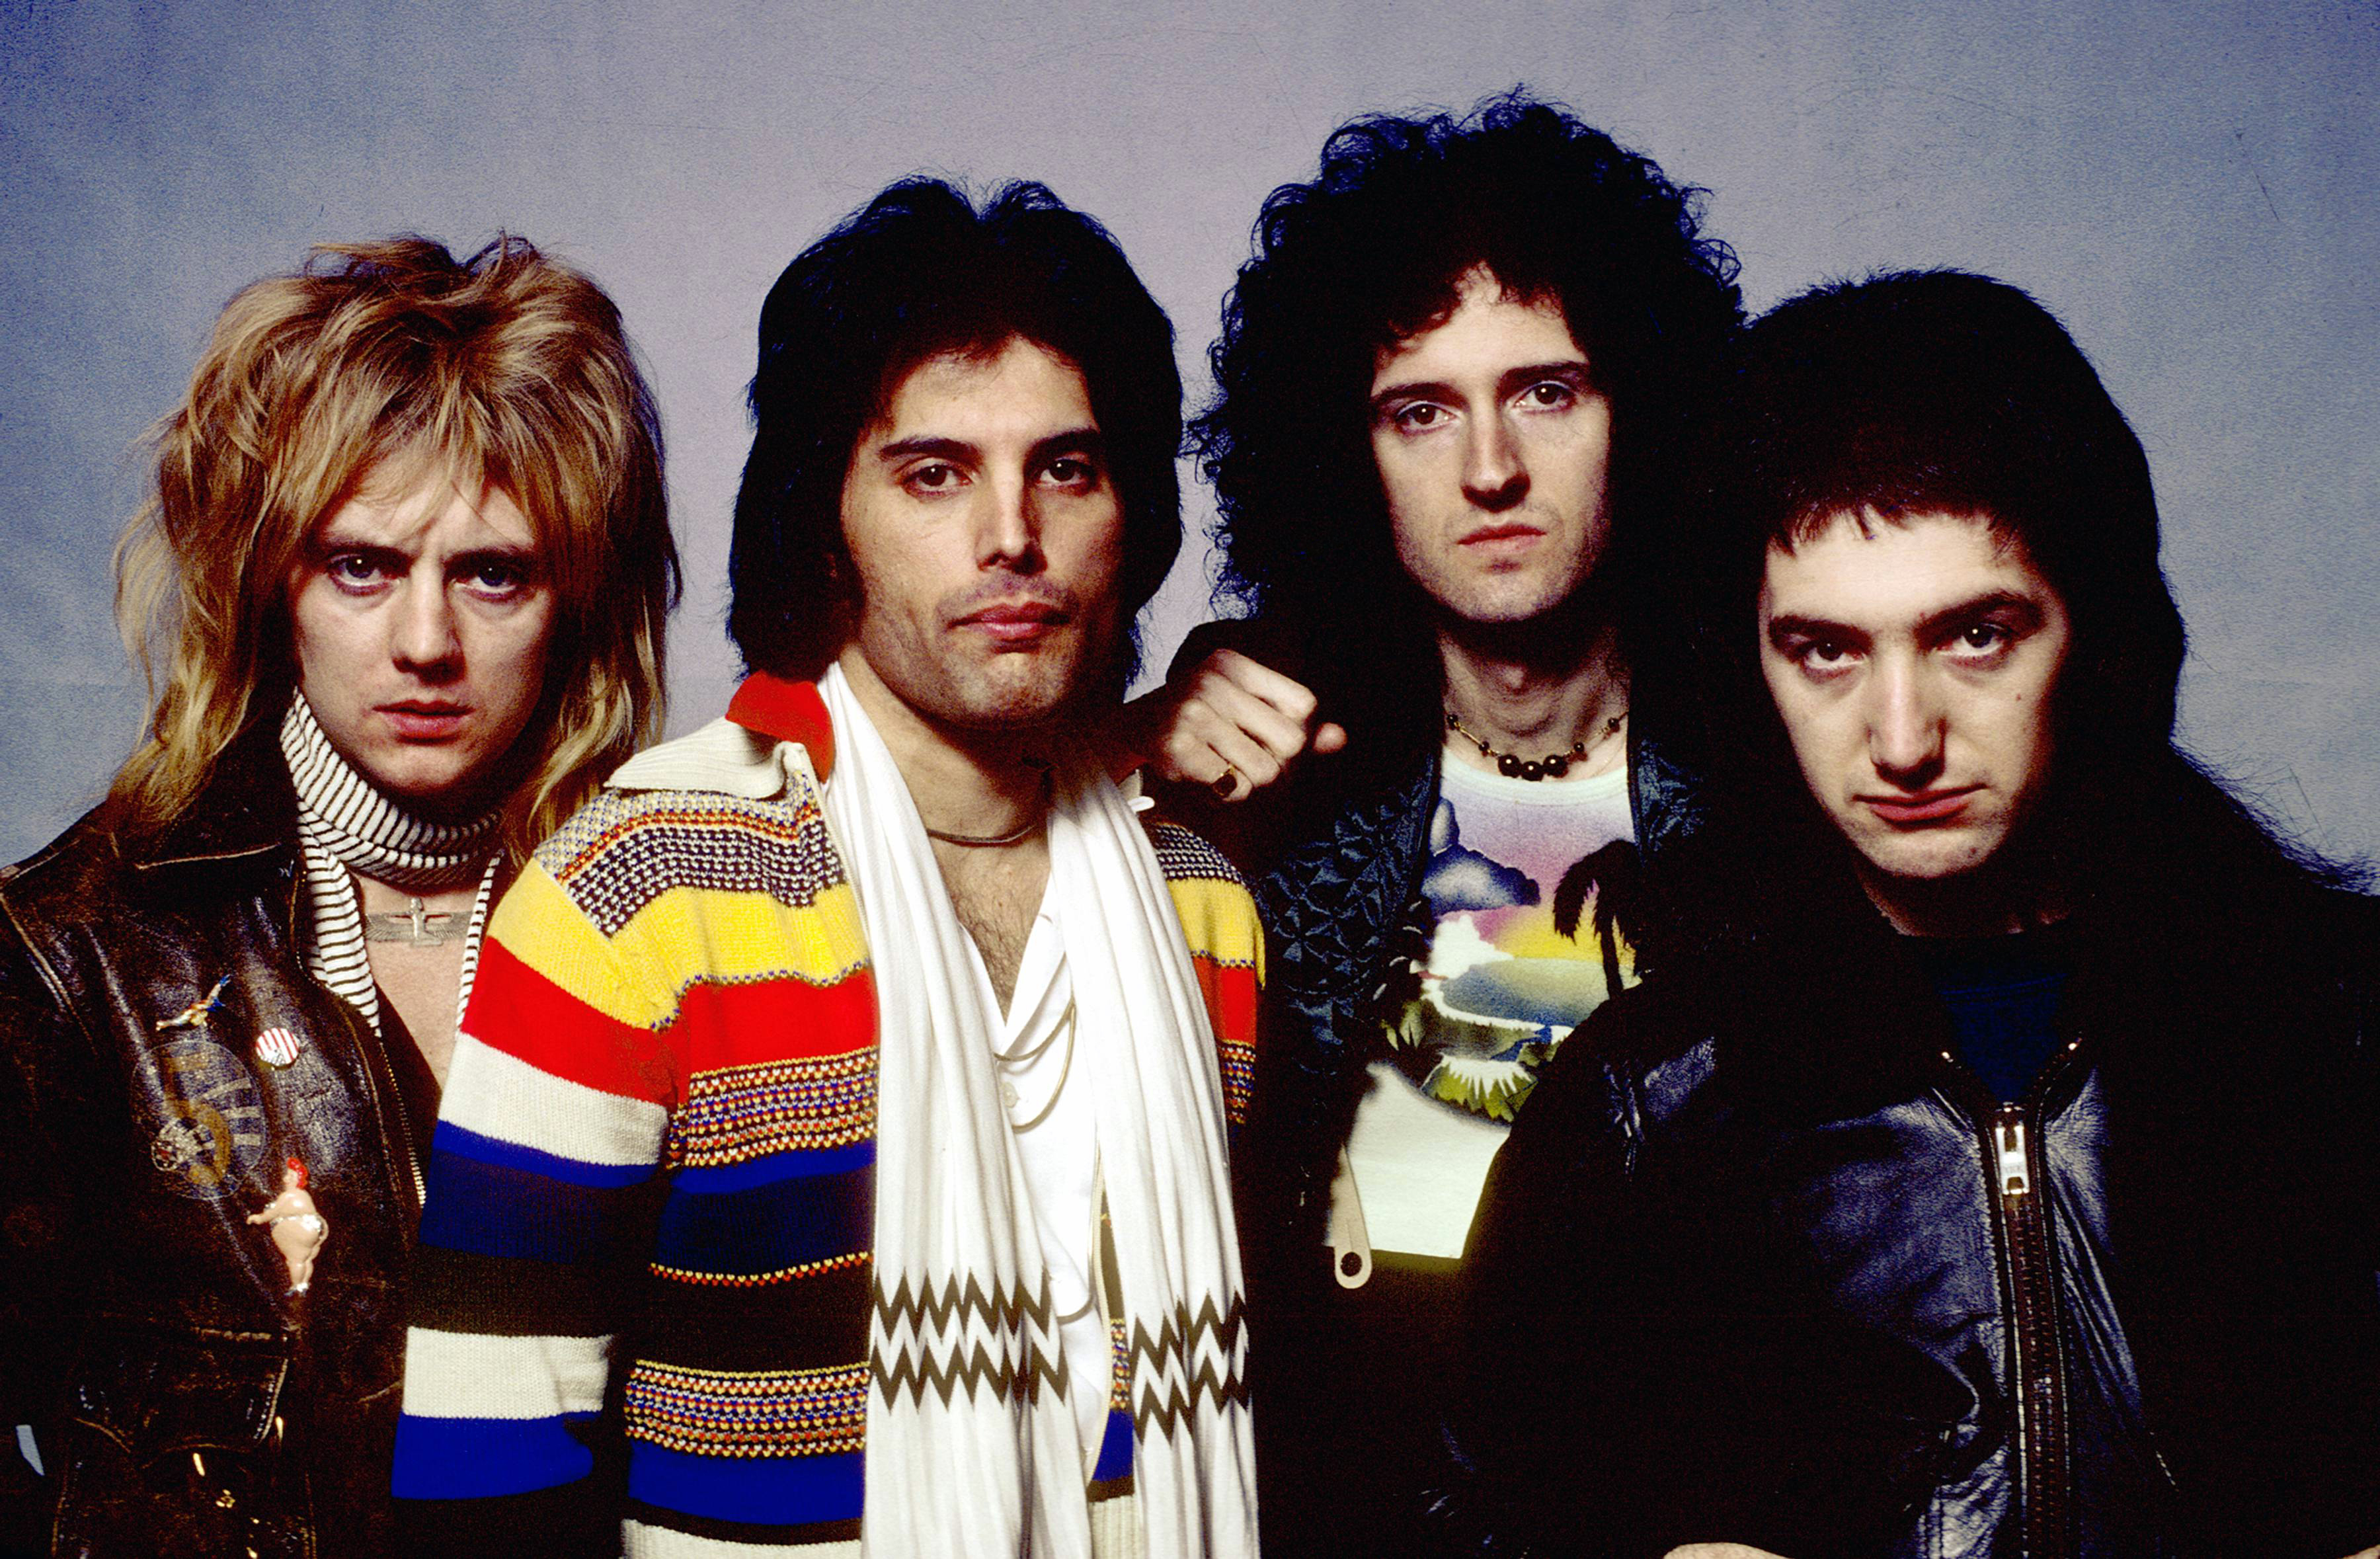 1e13eeb52 Queen's 'News of the World': 10 Things You Didn't Know – Rolling Stone